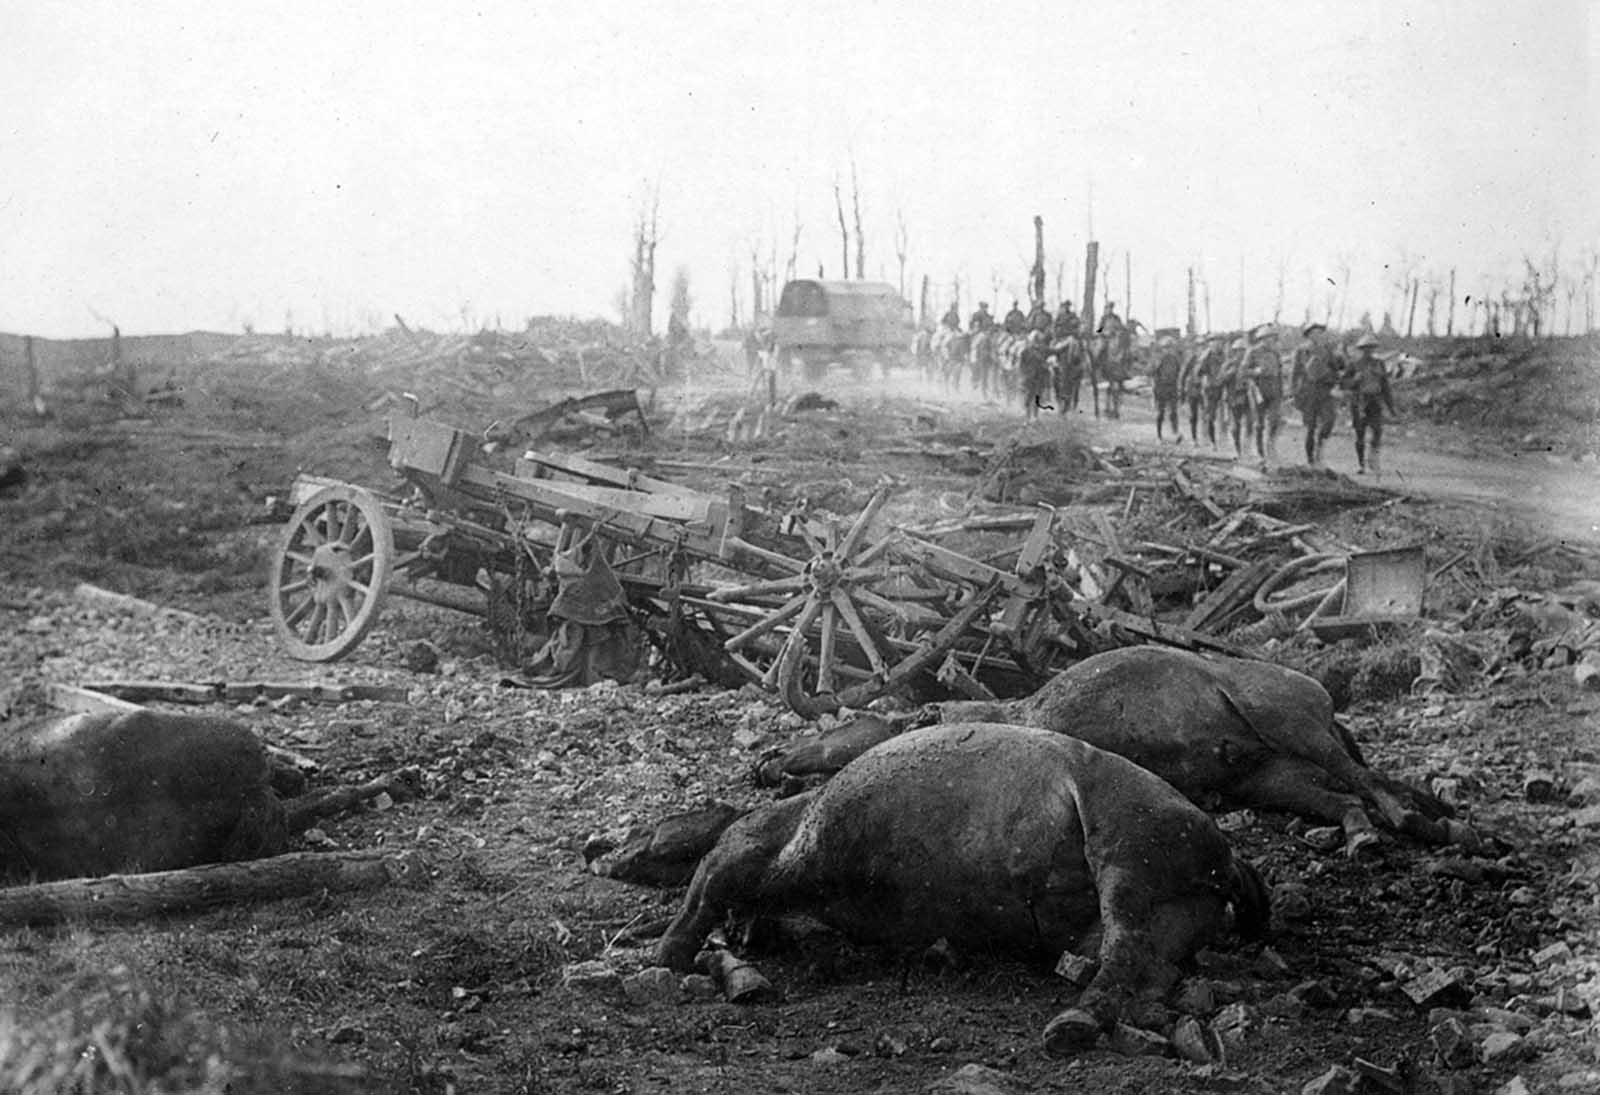 Dead horses and a broken cart on Menin Road, troops in the distance, Ypres sector, Belgium, in 1917. Horses meant power and agility, hauling weaponry, equipment, and personnel, and were targeted by enemy troops to weaken the other side -- or were captured to be put in use by a different army.